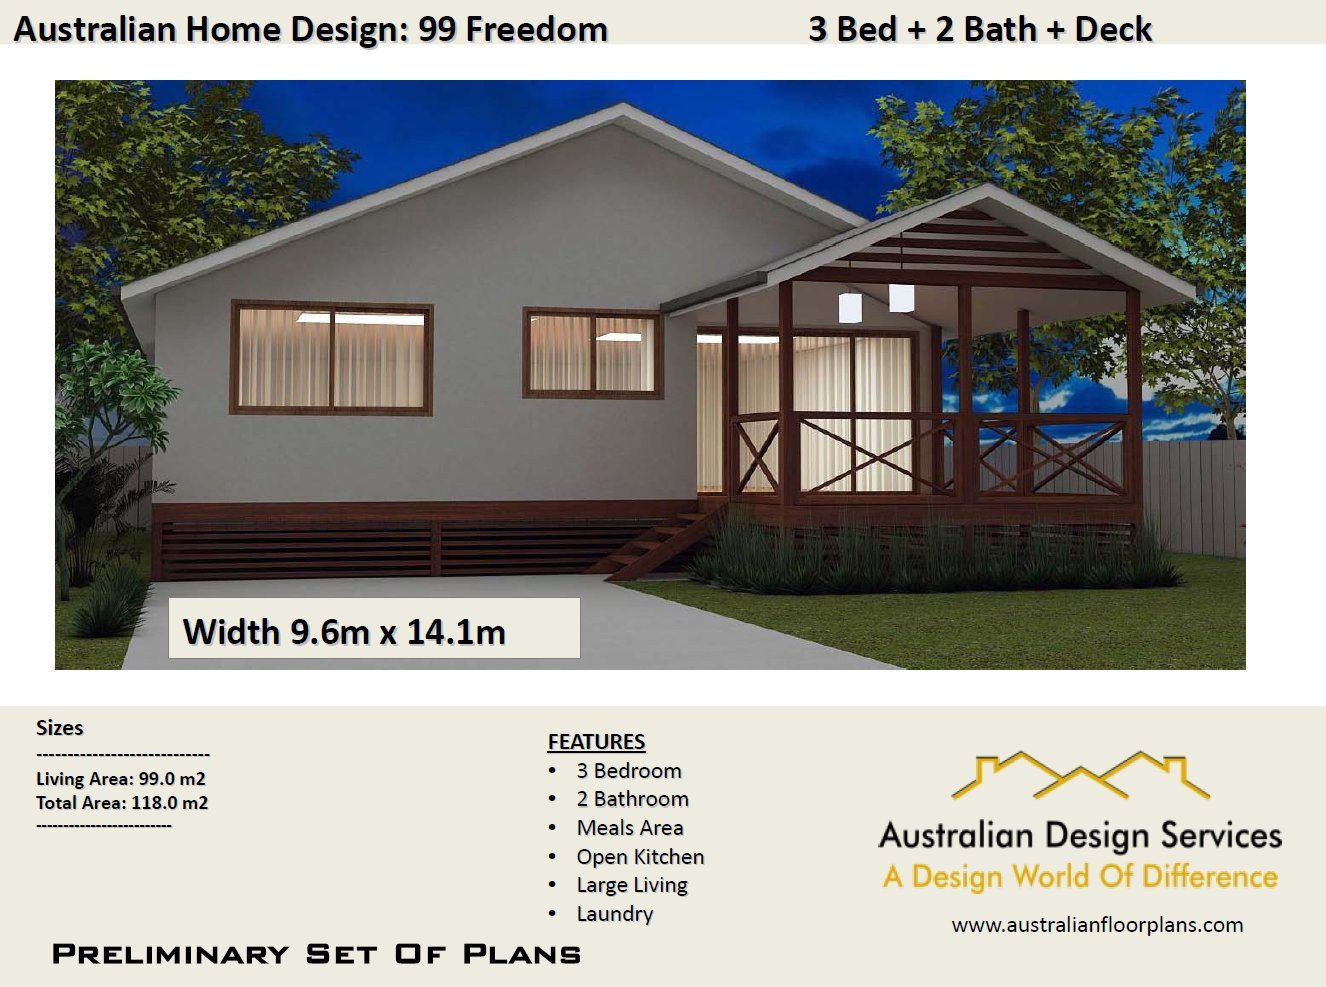 3 Bedroom Country Style Design 1274 Sq Foot 118 Sq Etsy House Plans Australia House Plans For Sale Bedroom House Plans